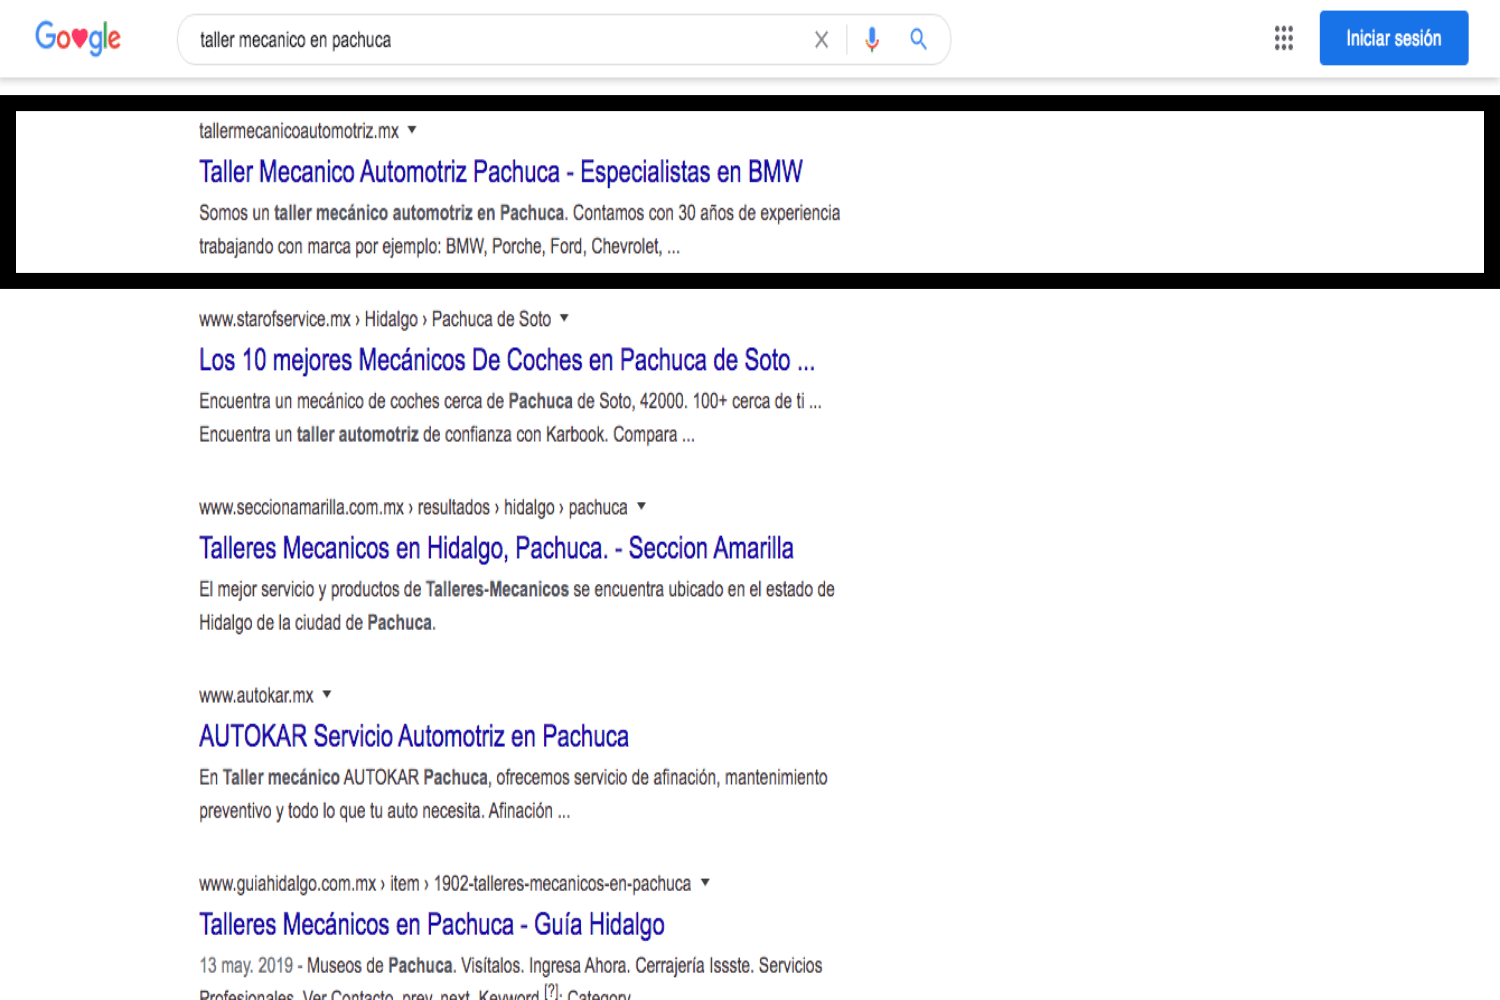 Posicionamiento SEO, Taler Mecánico, Agencia Marketing Digital